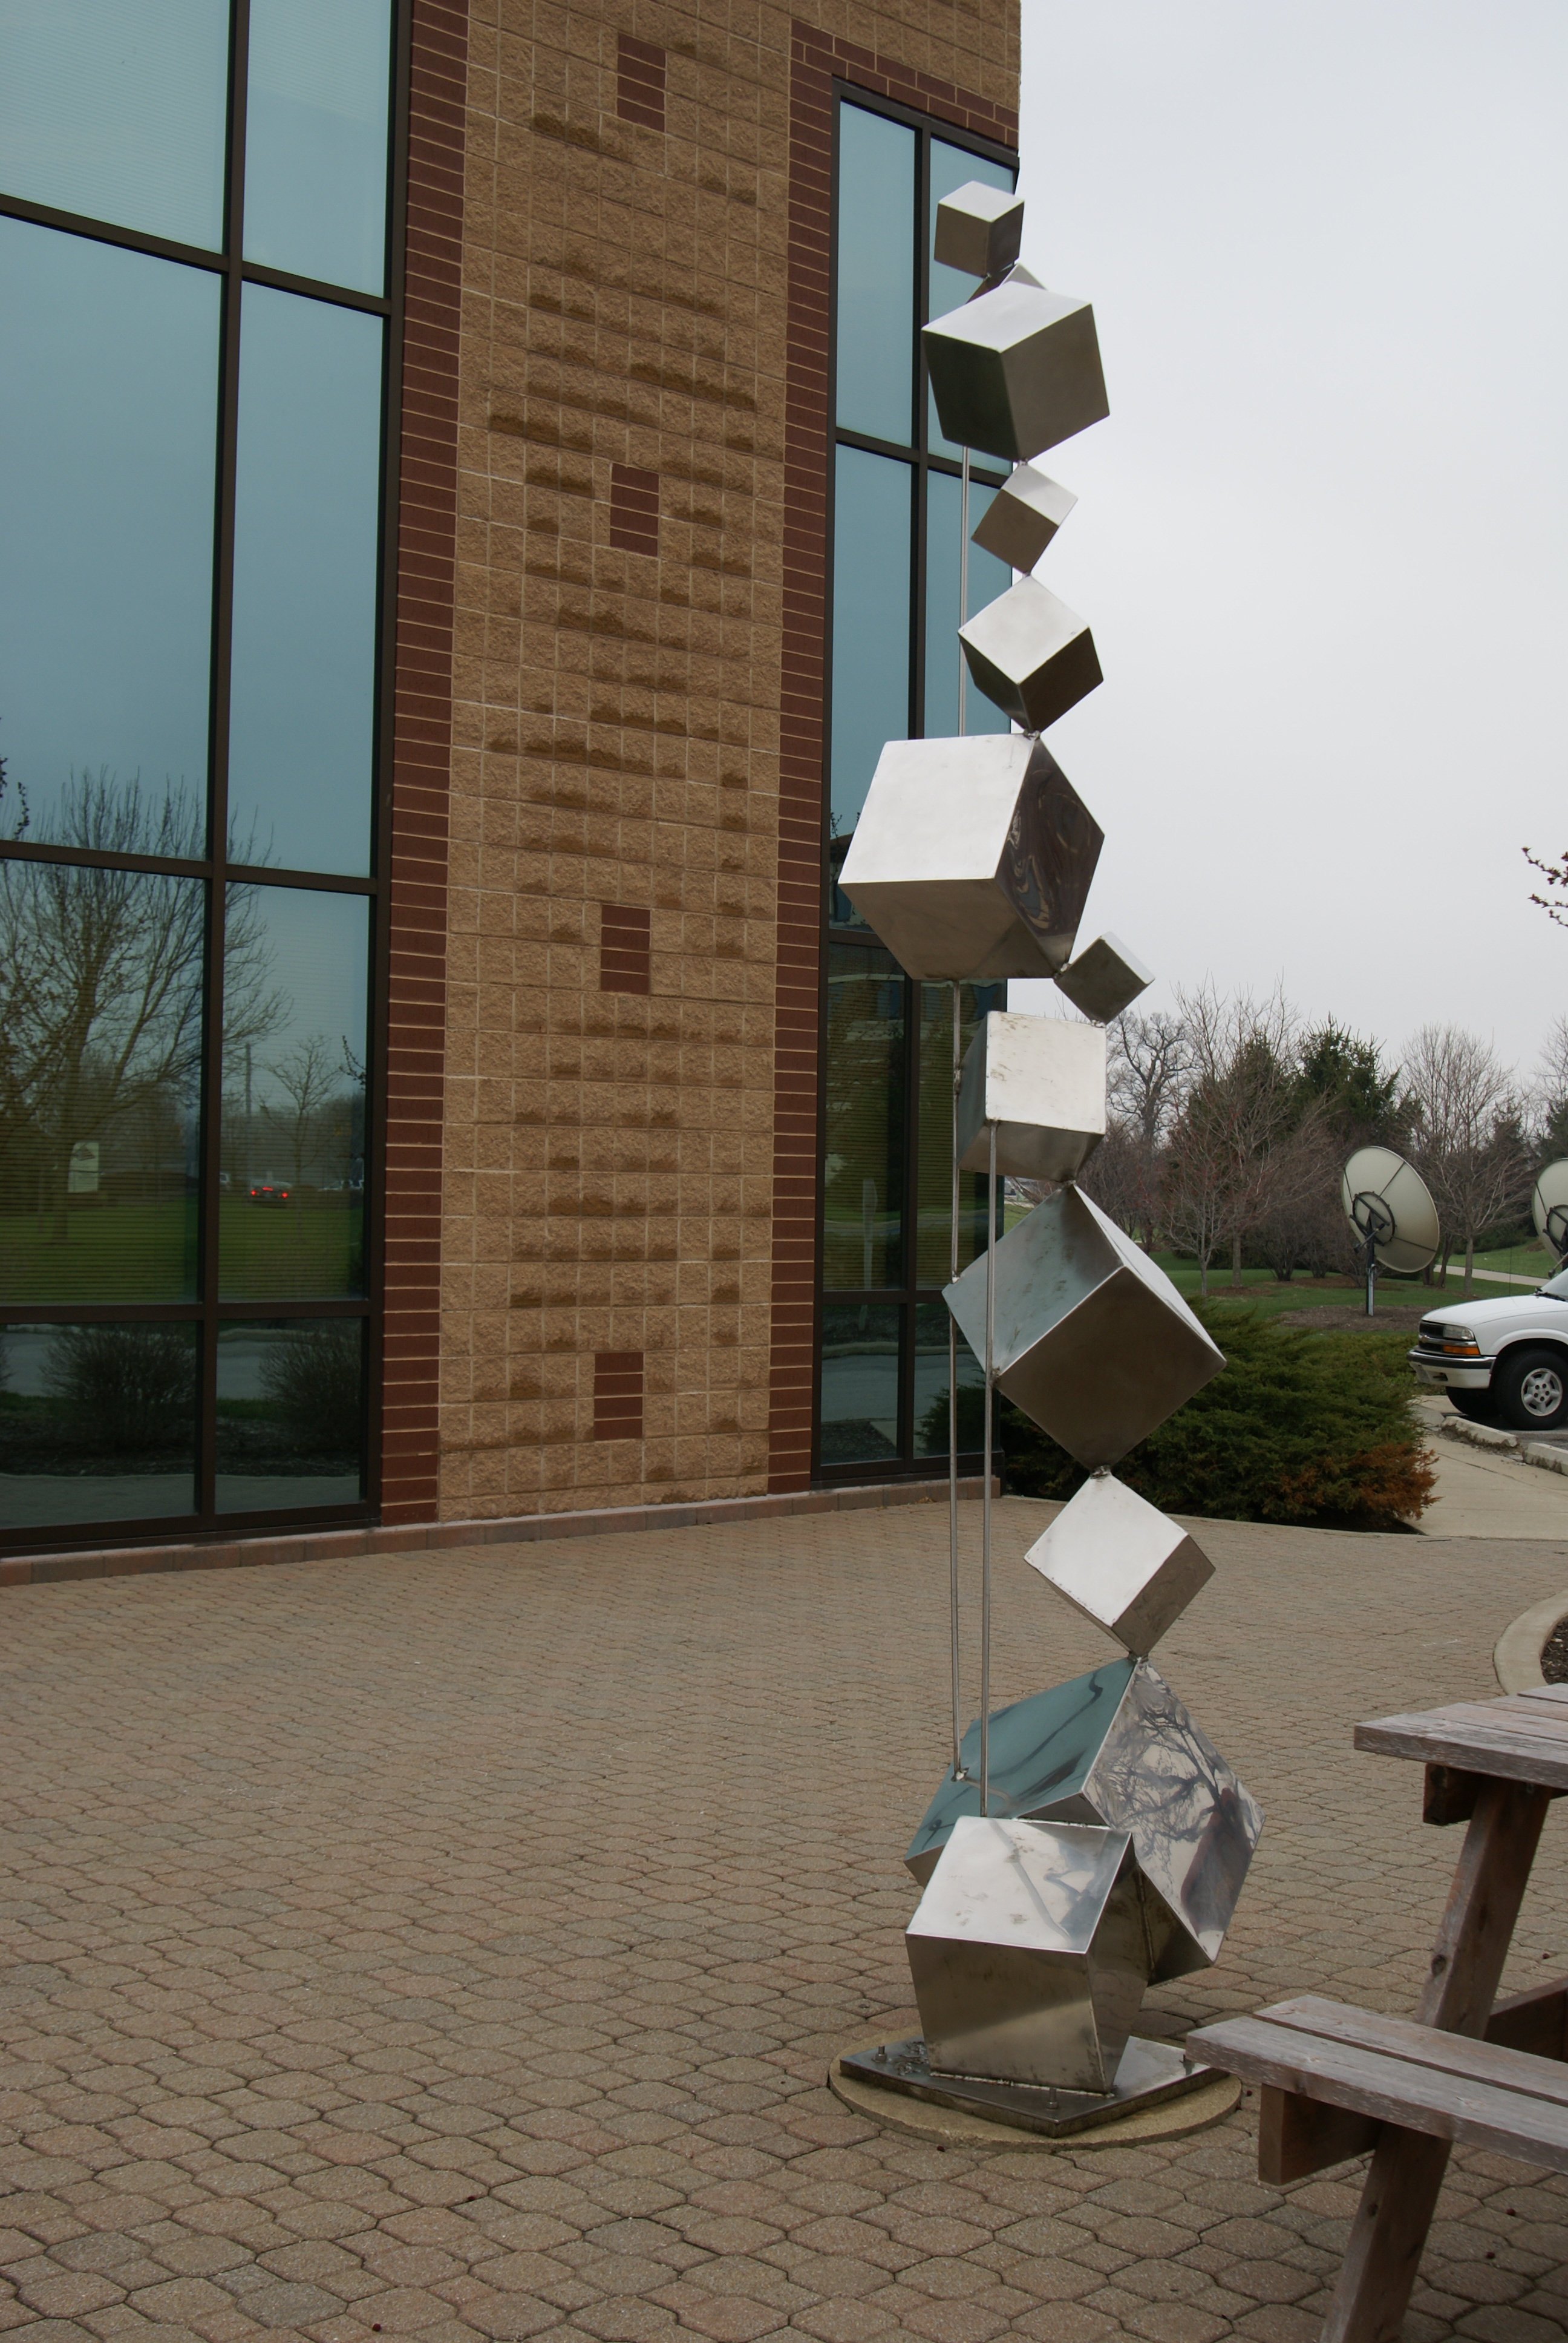 Harmony sculpture